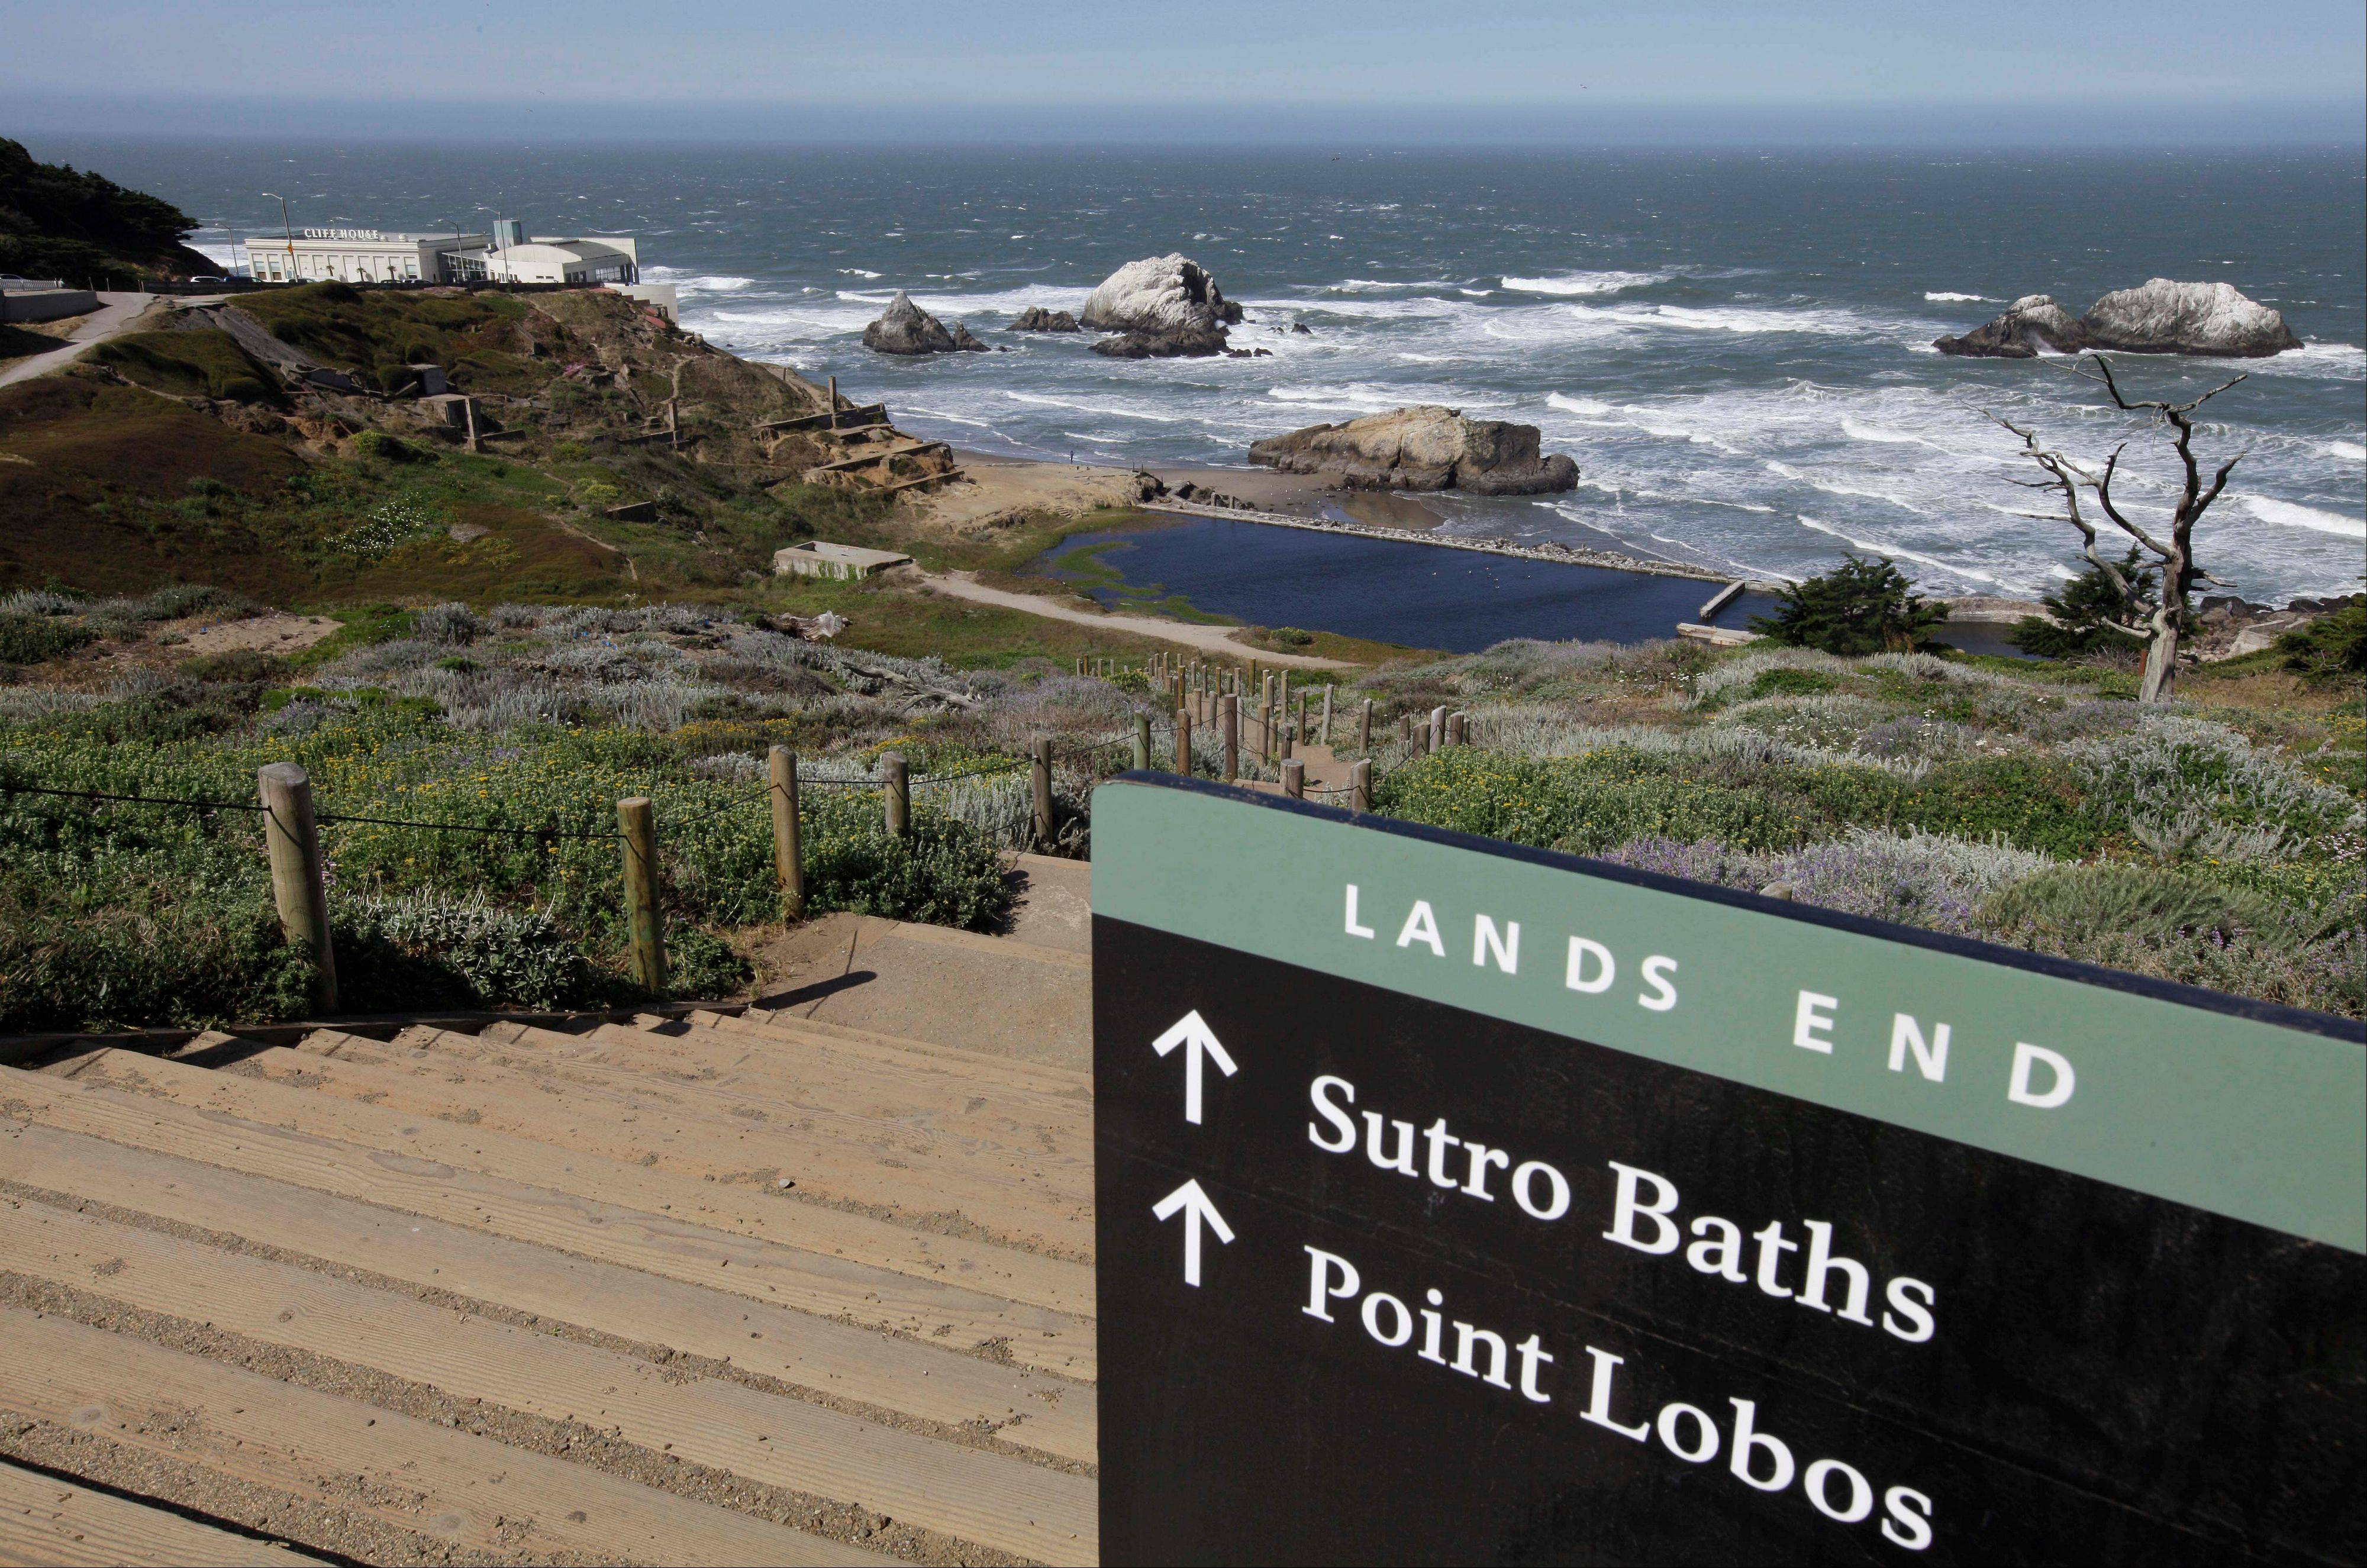 A sign leads down the path to the ruins of the Sutro Baths at Land's End.